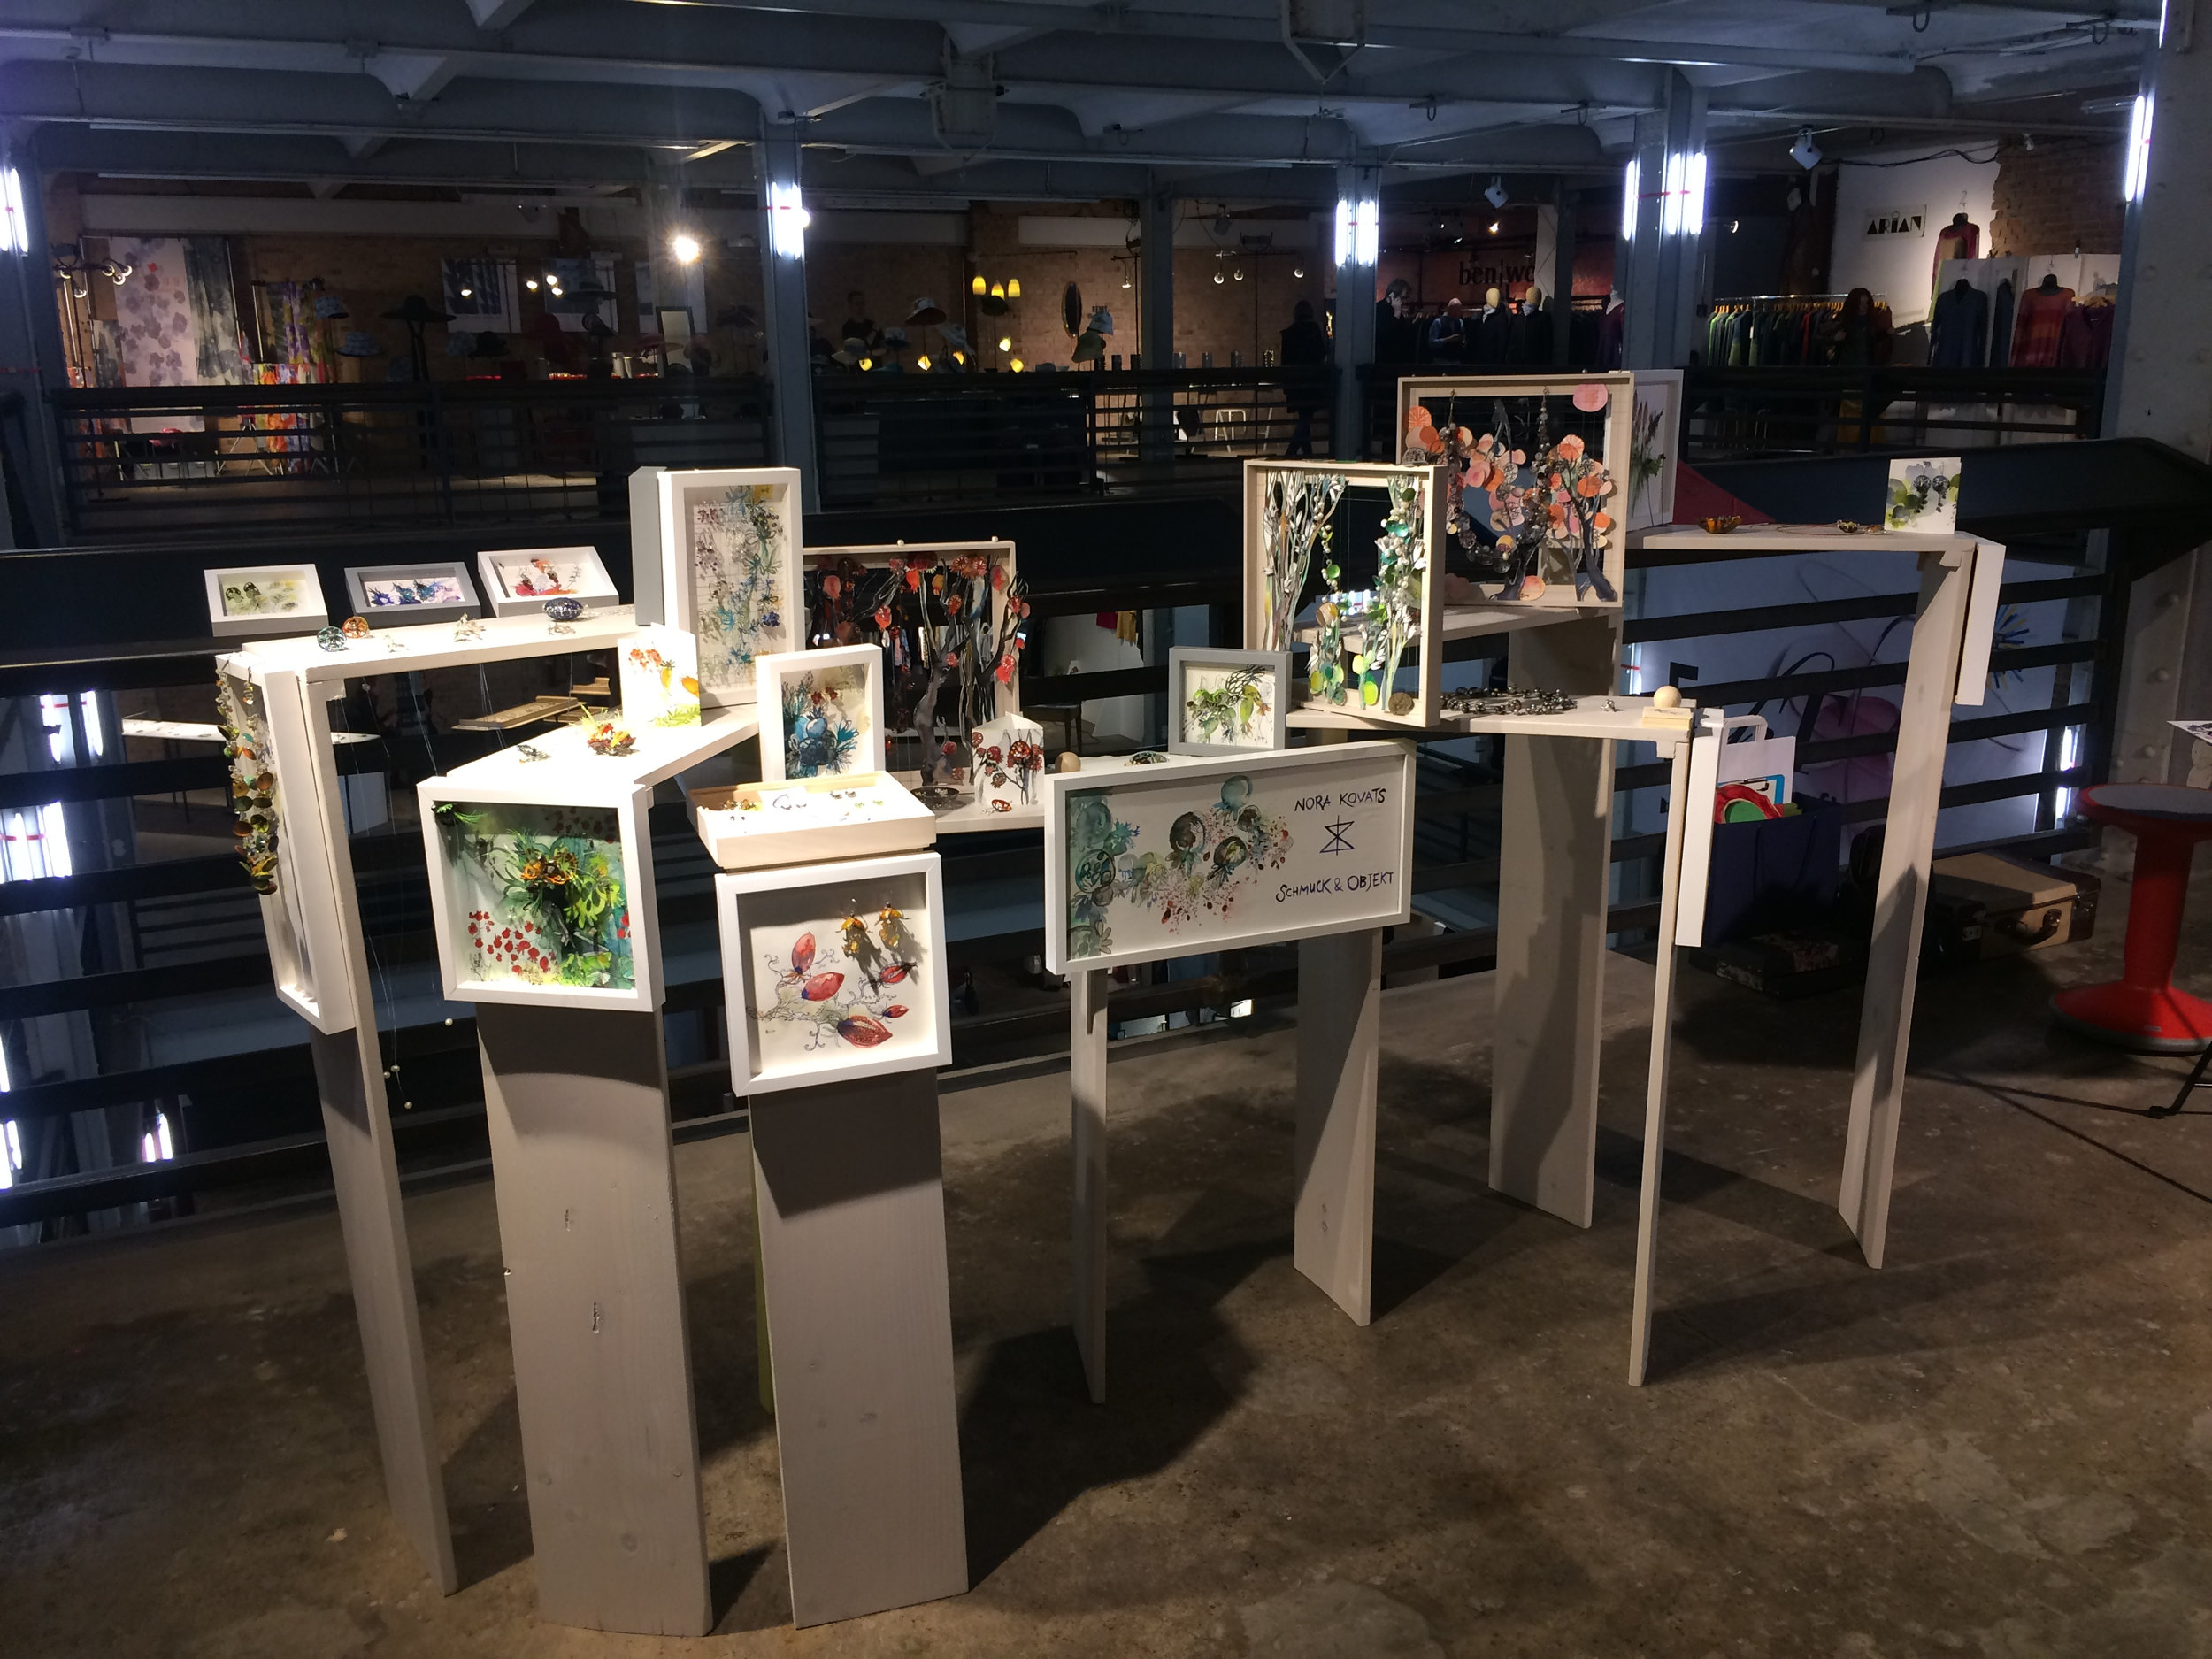 EchT Modern Craft show in April 2019.